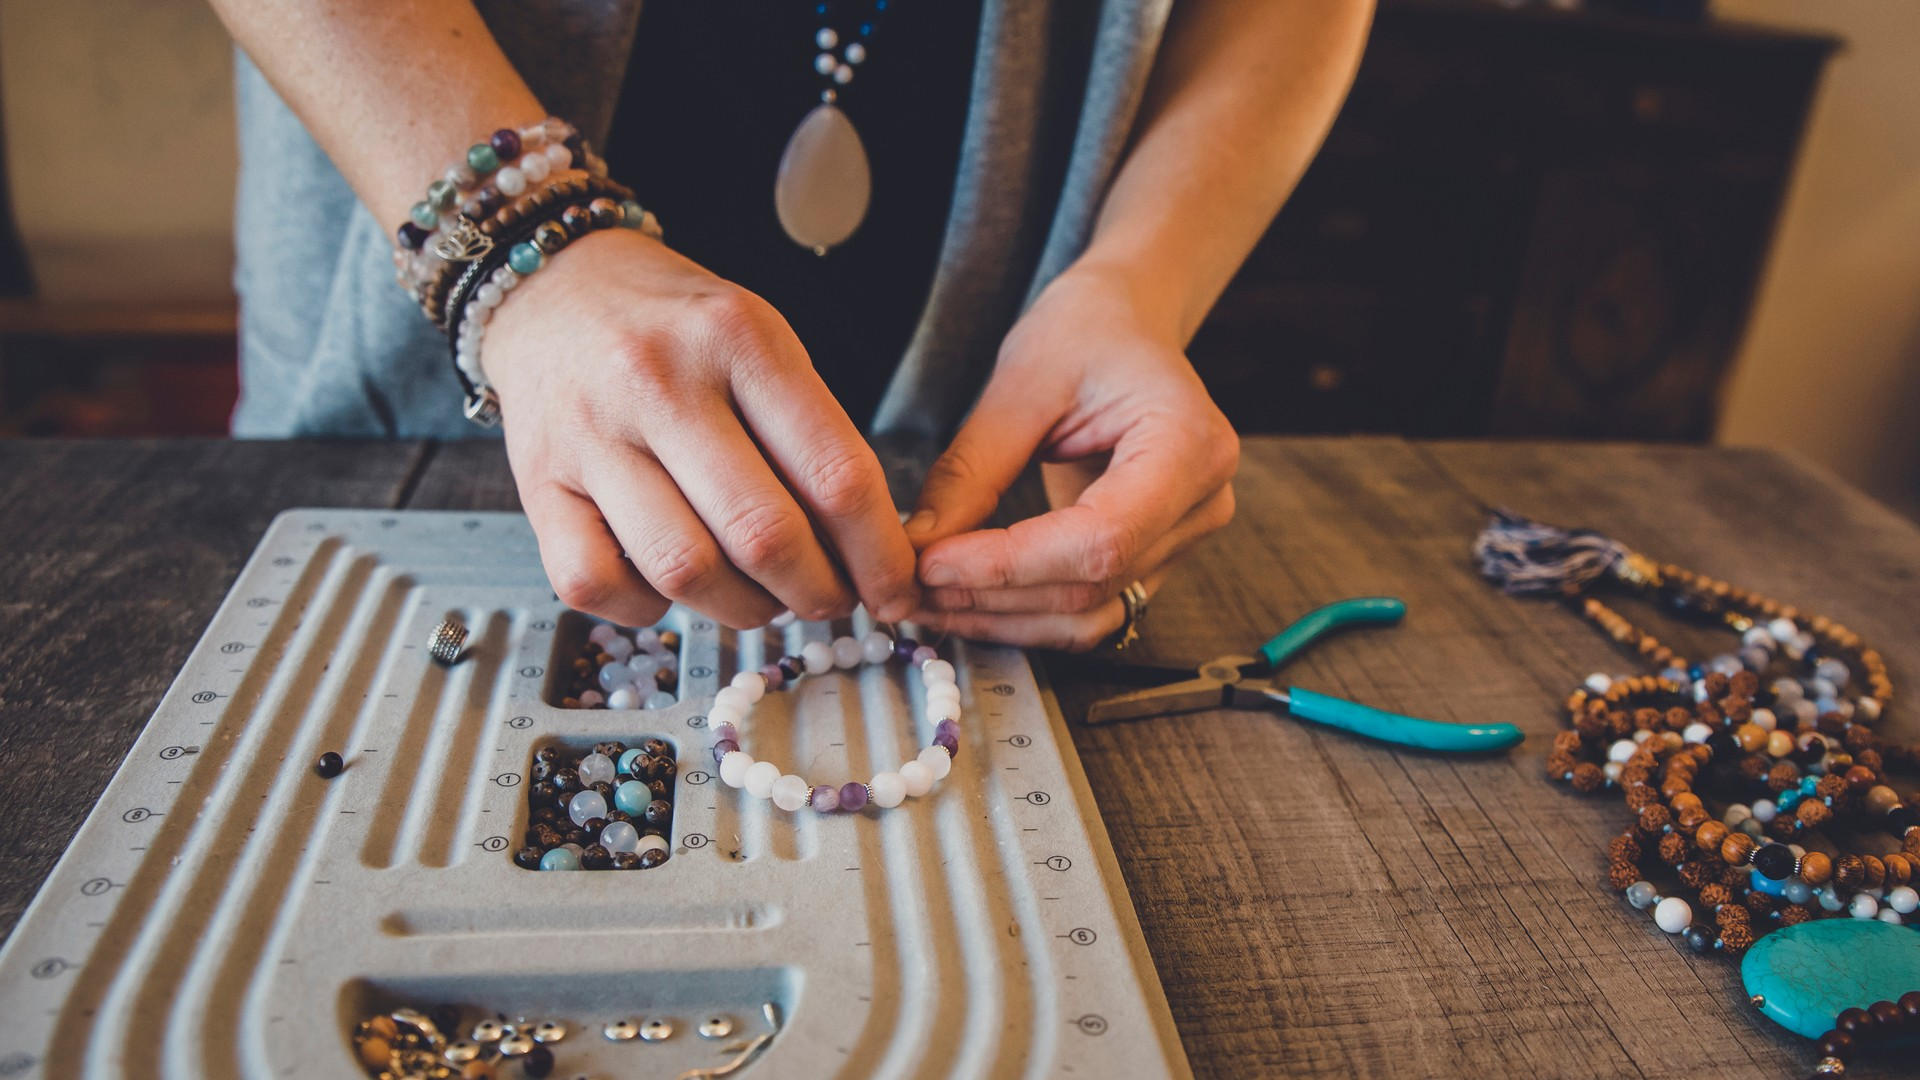 500+ Catchy Jewelry Brand Name ideas| Quirky names for your jewelry Business